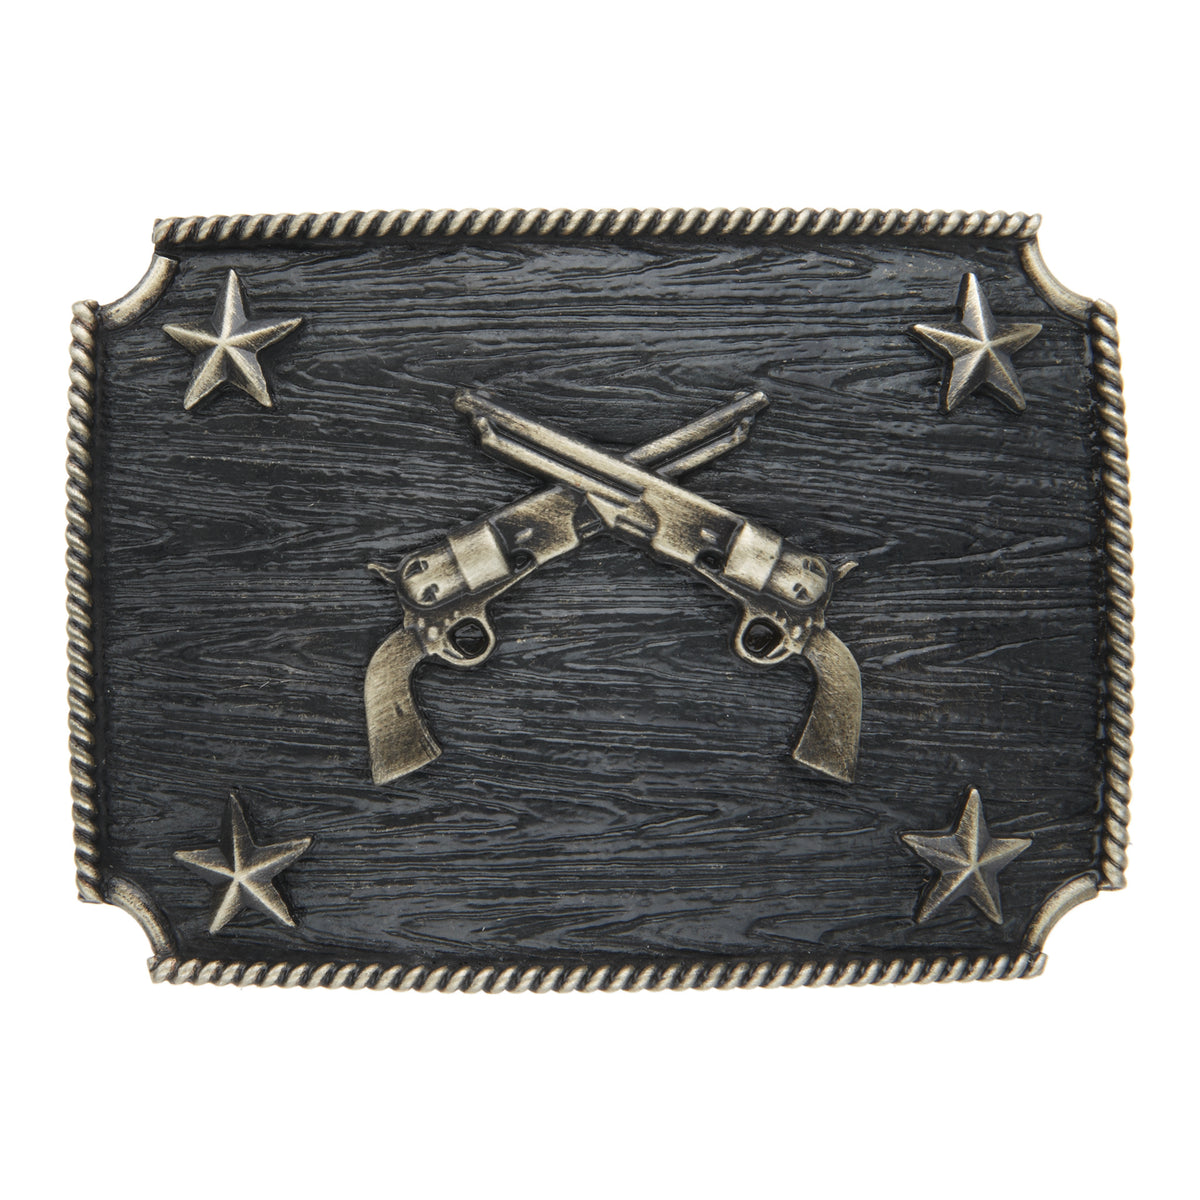 Crossed Pistols with Stars Iconic Classic Buckle